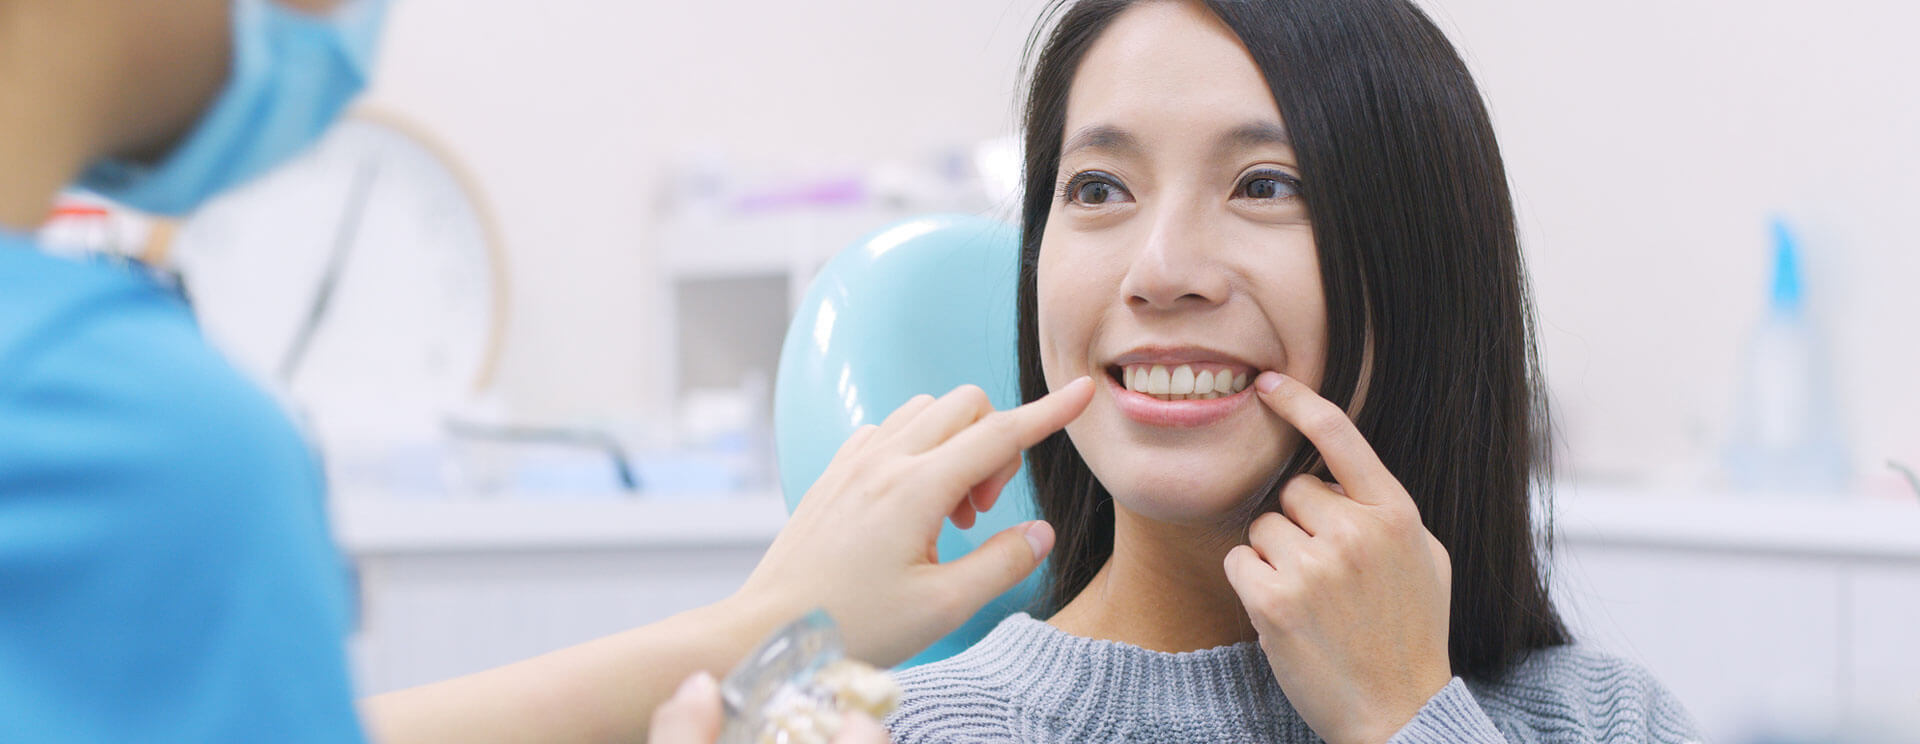 Female patient smiling and pointing her finger showing a dental implant